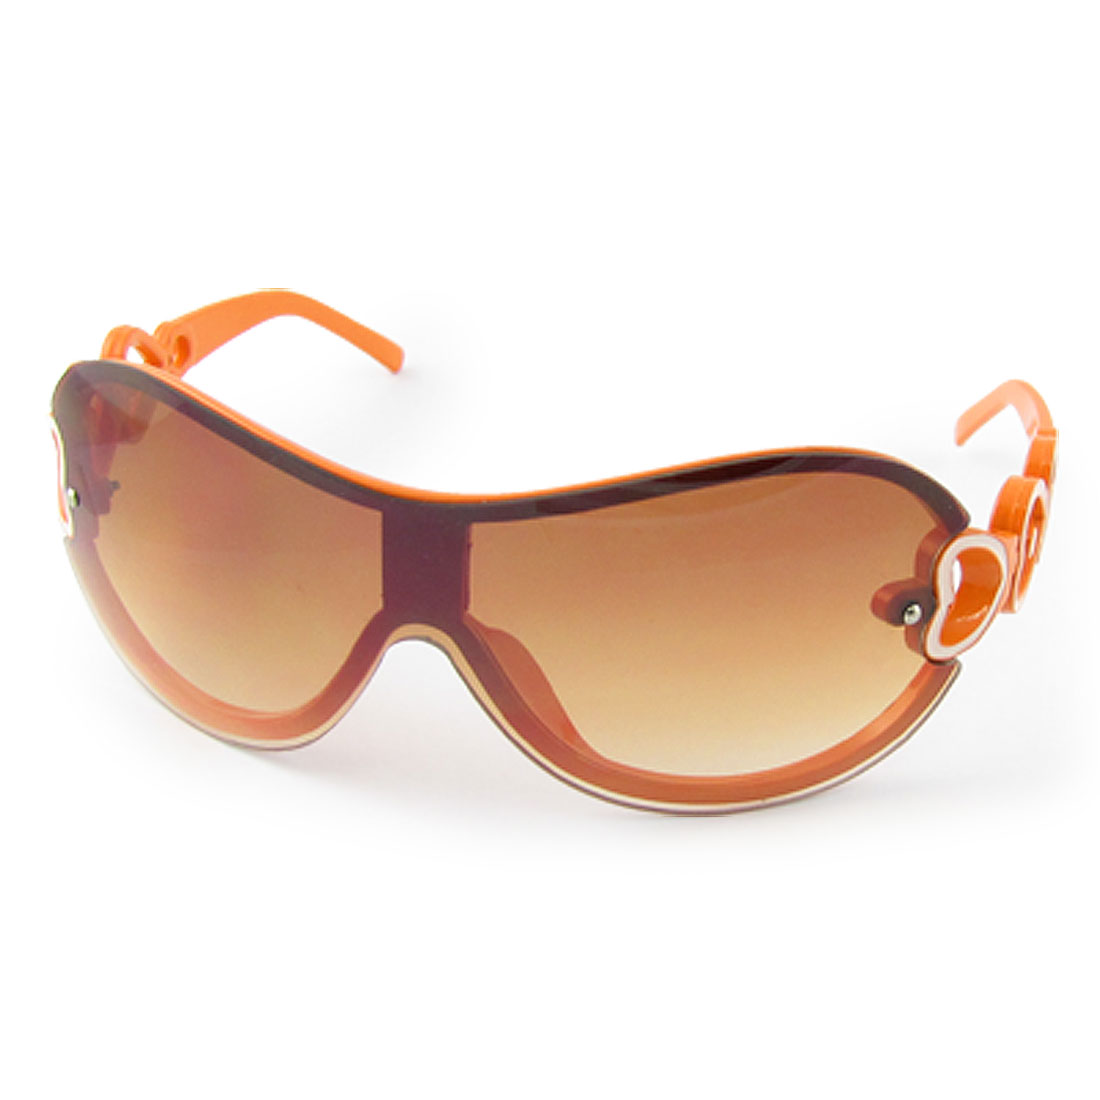 Tinted Lens Heart Style Arms Orange Sunglasses for Kids